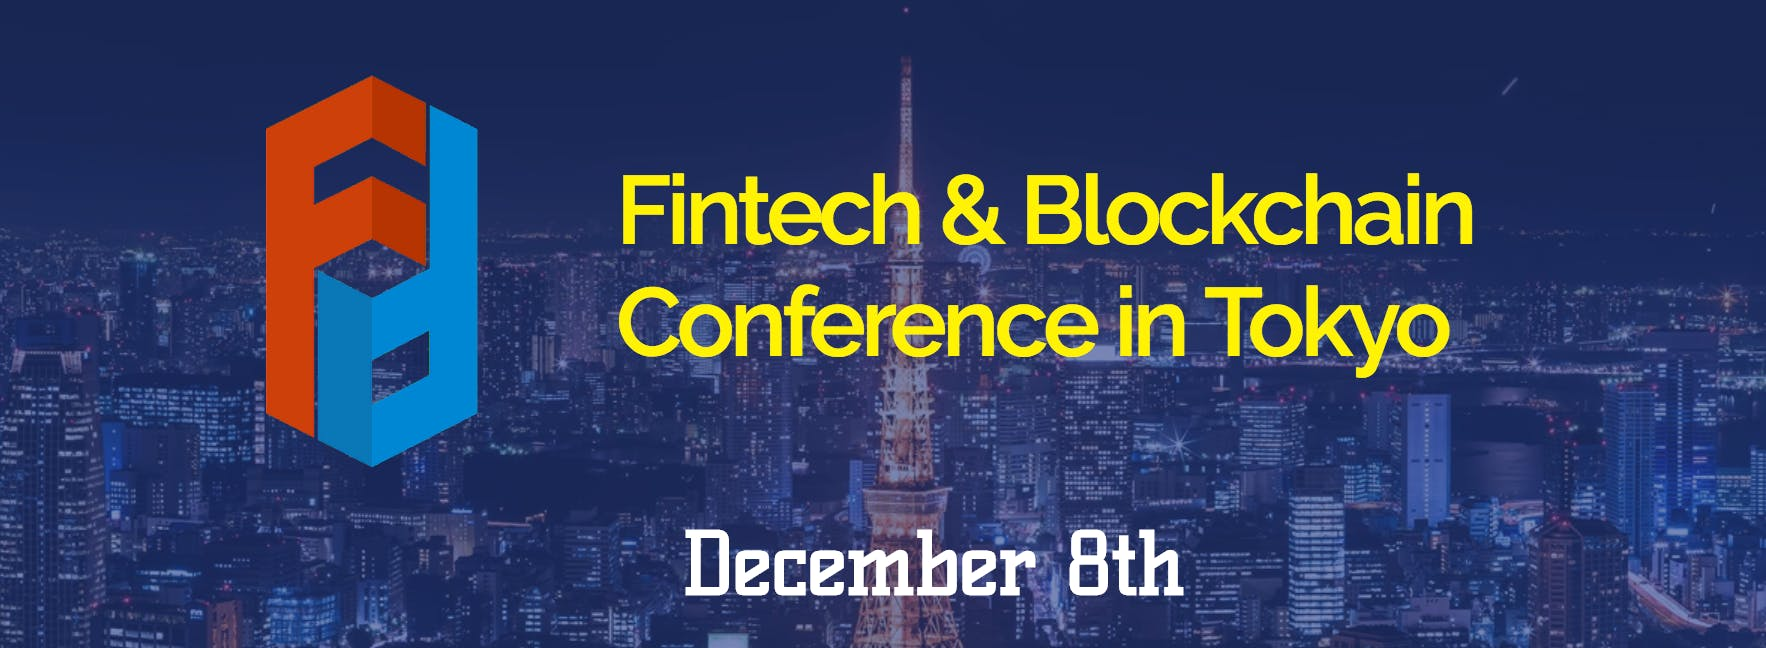 Fintech & Blockchain Conference in Tokyo 2018